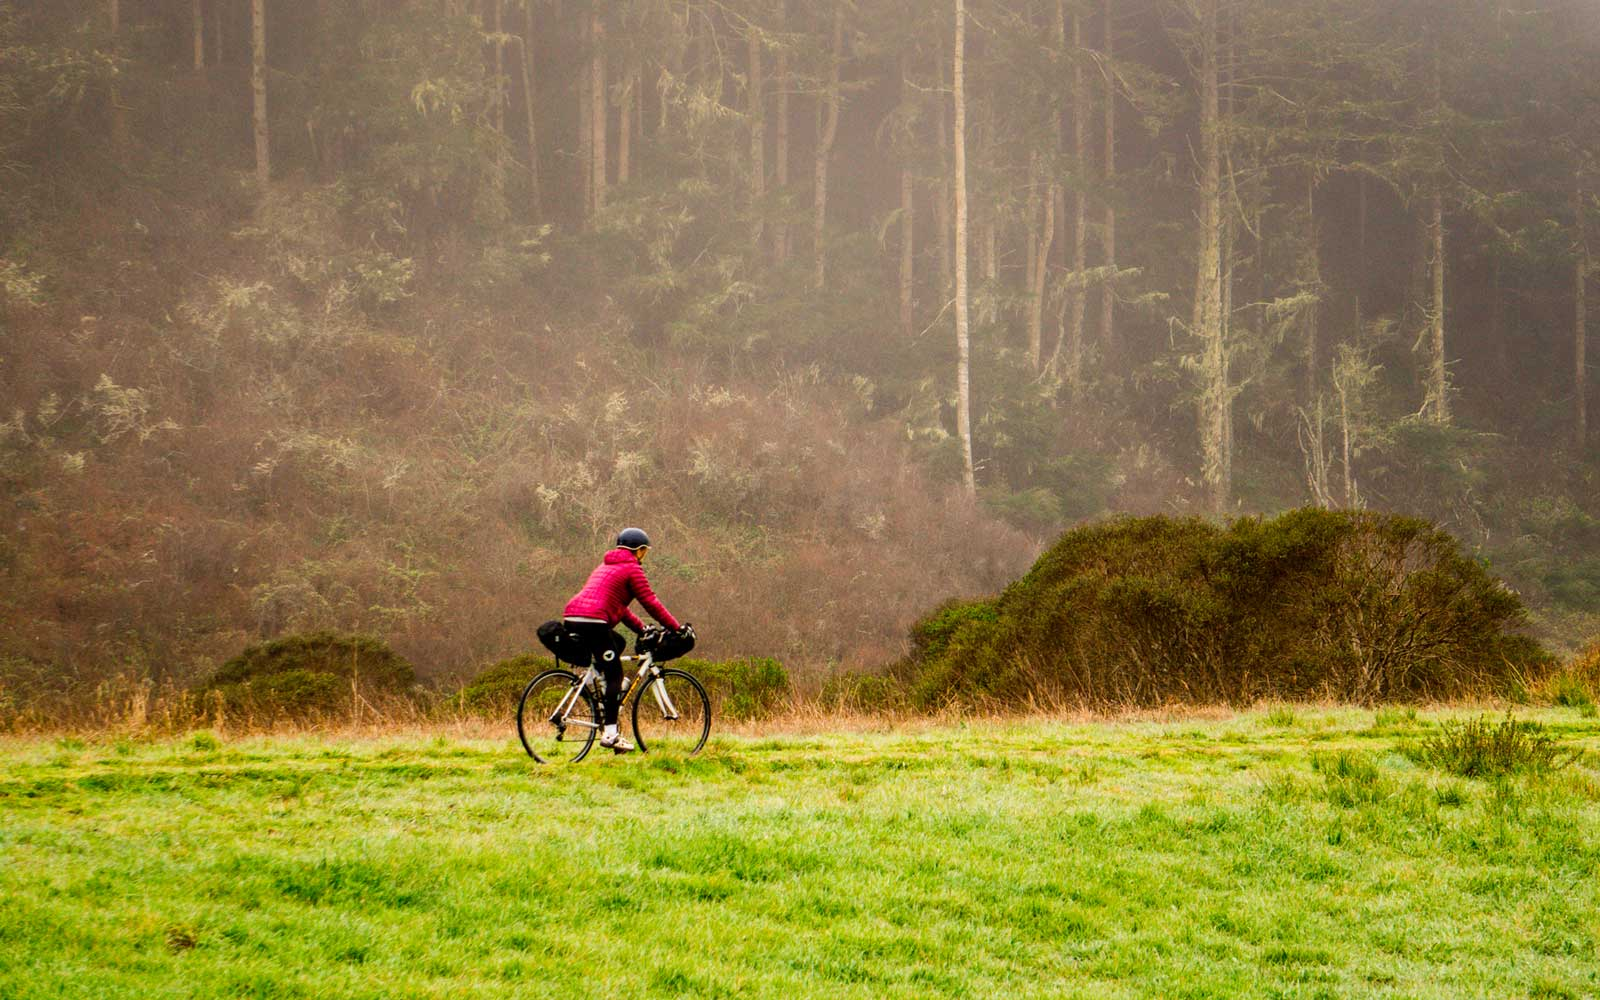 Riding bicycle on trail